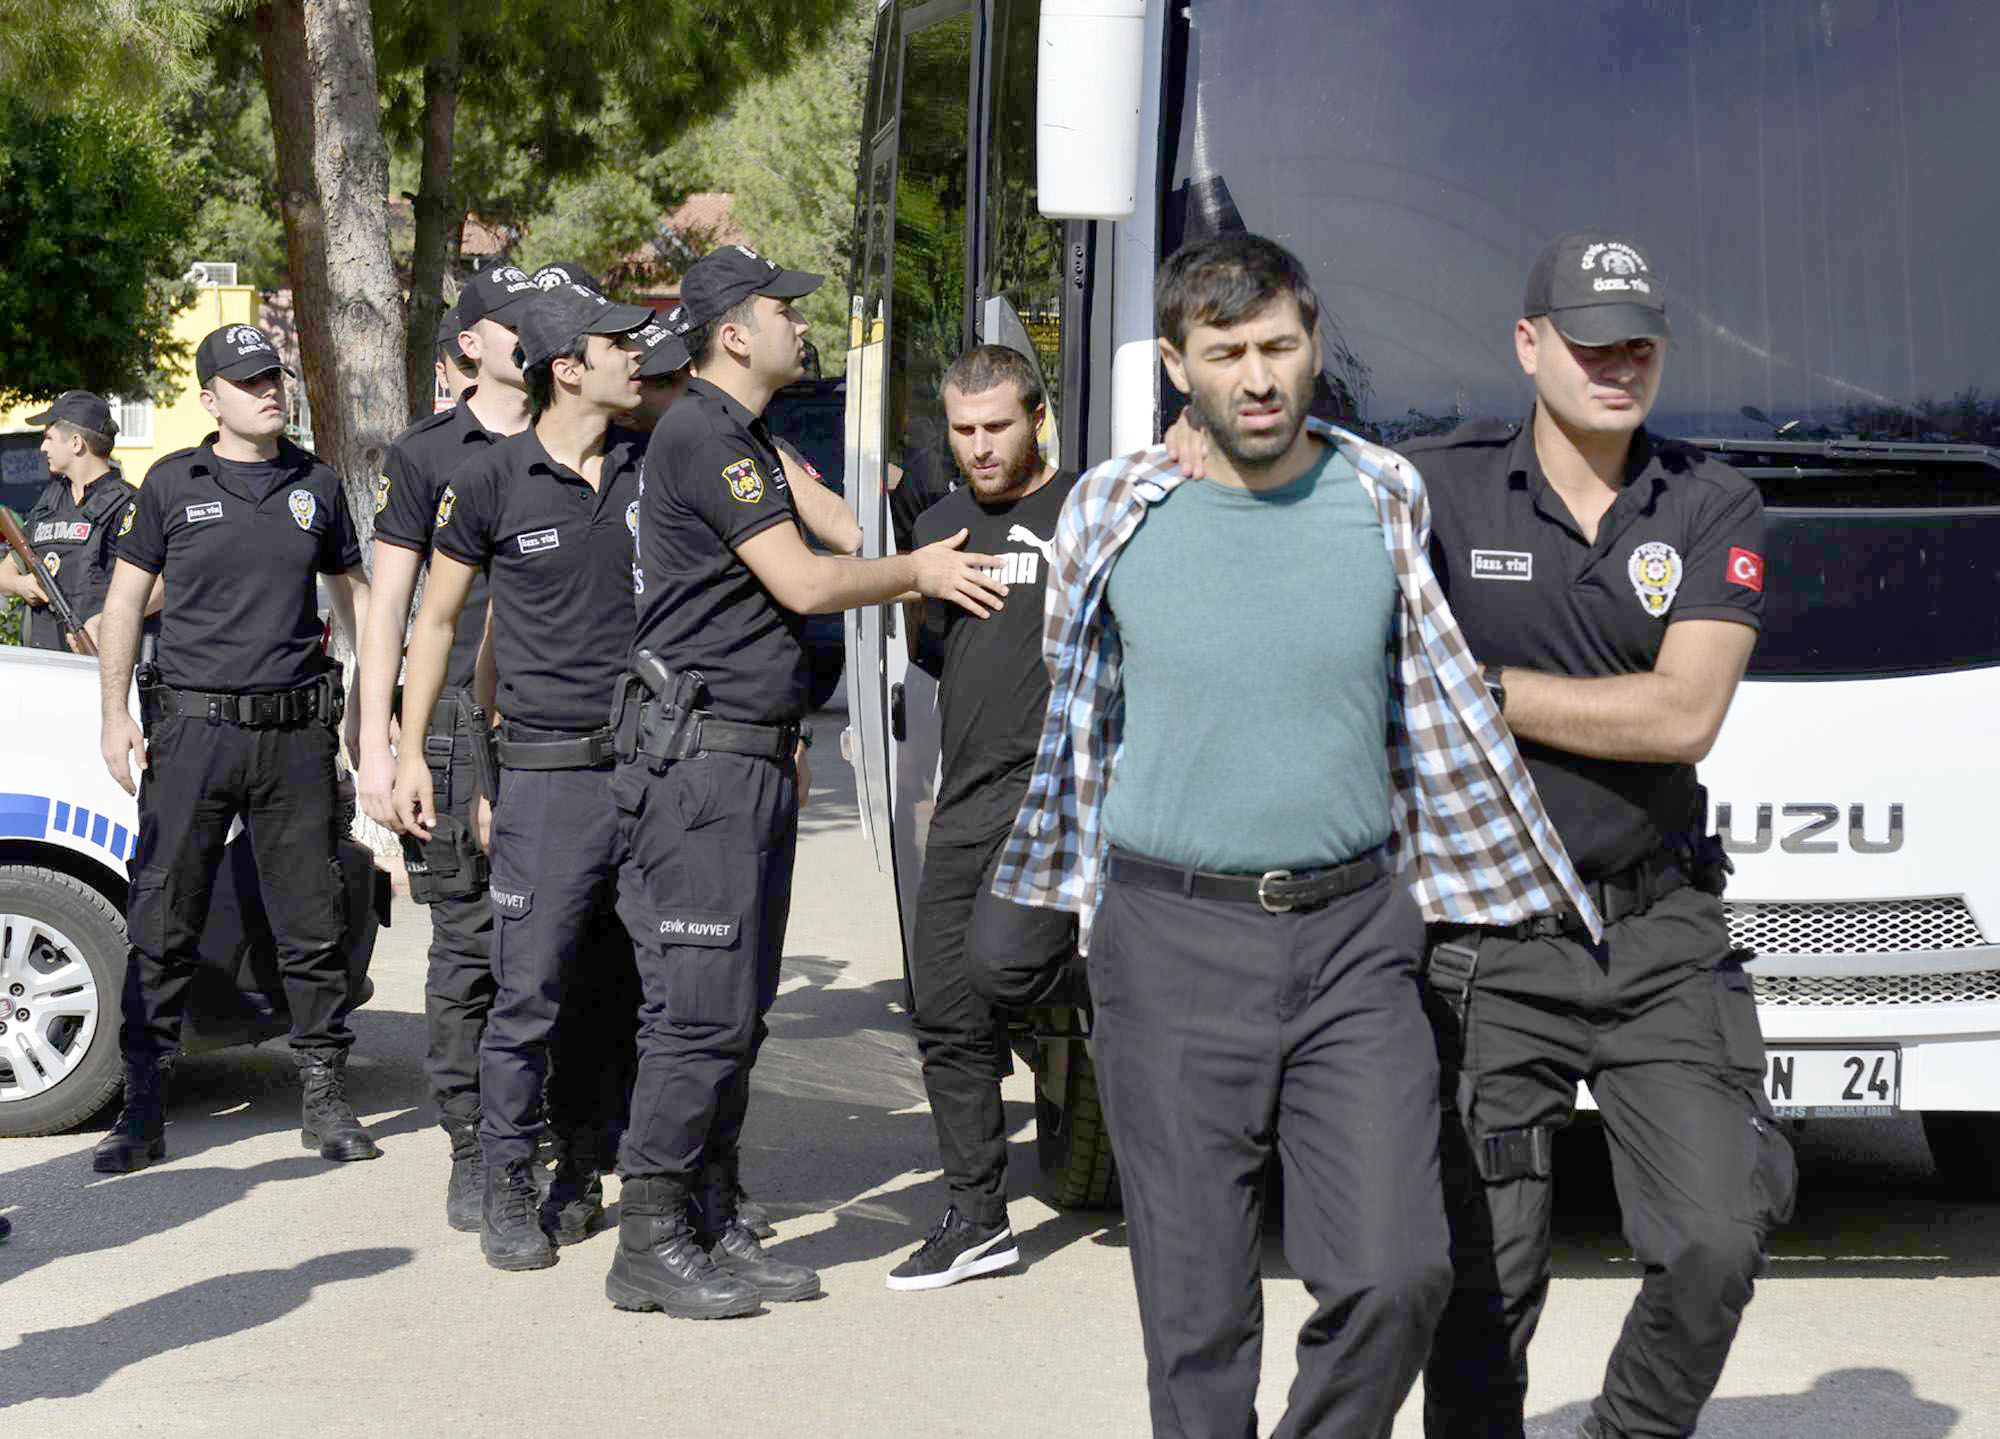 Turkish police officers escort men, suspected of being ISIS members, at a court in Adana in southern Turkey, last November. (AP)